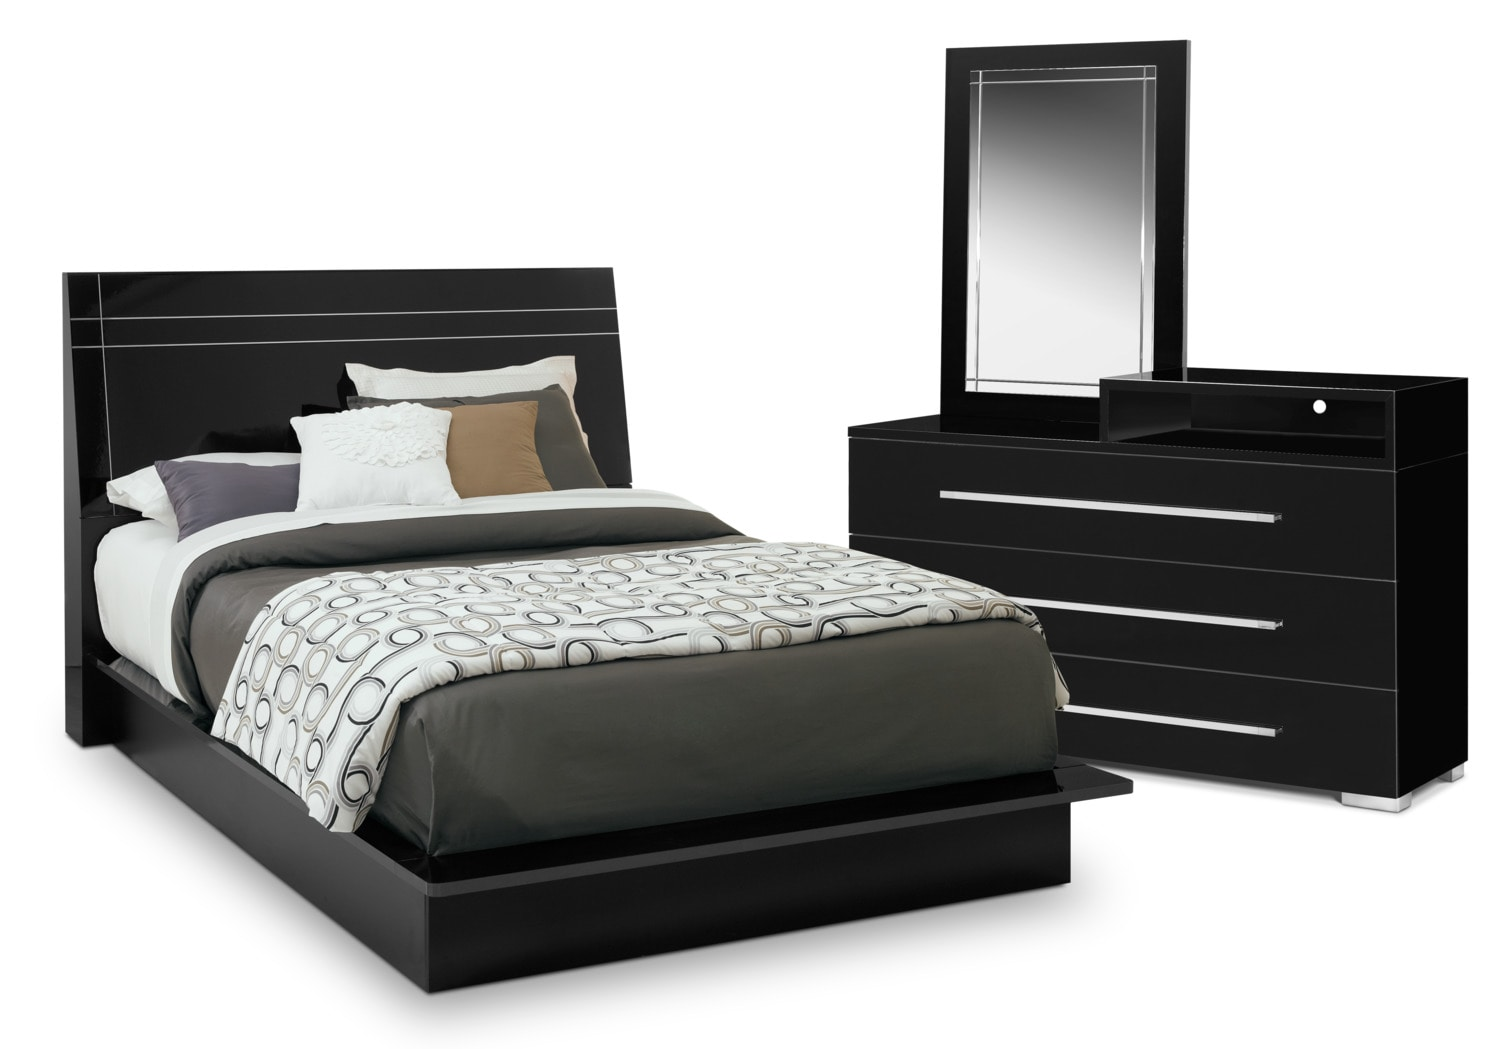 dimora bedroom set dimora 5 panel bedroom set with media dresser 11428